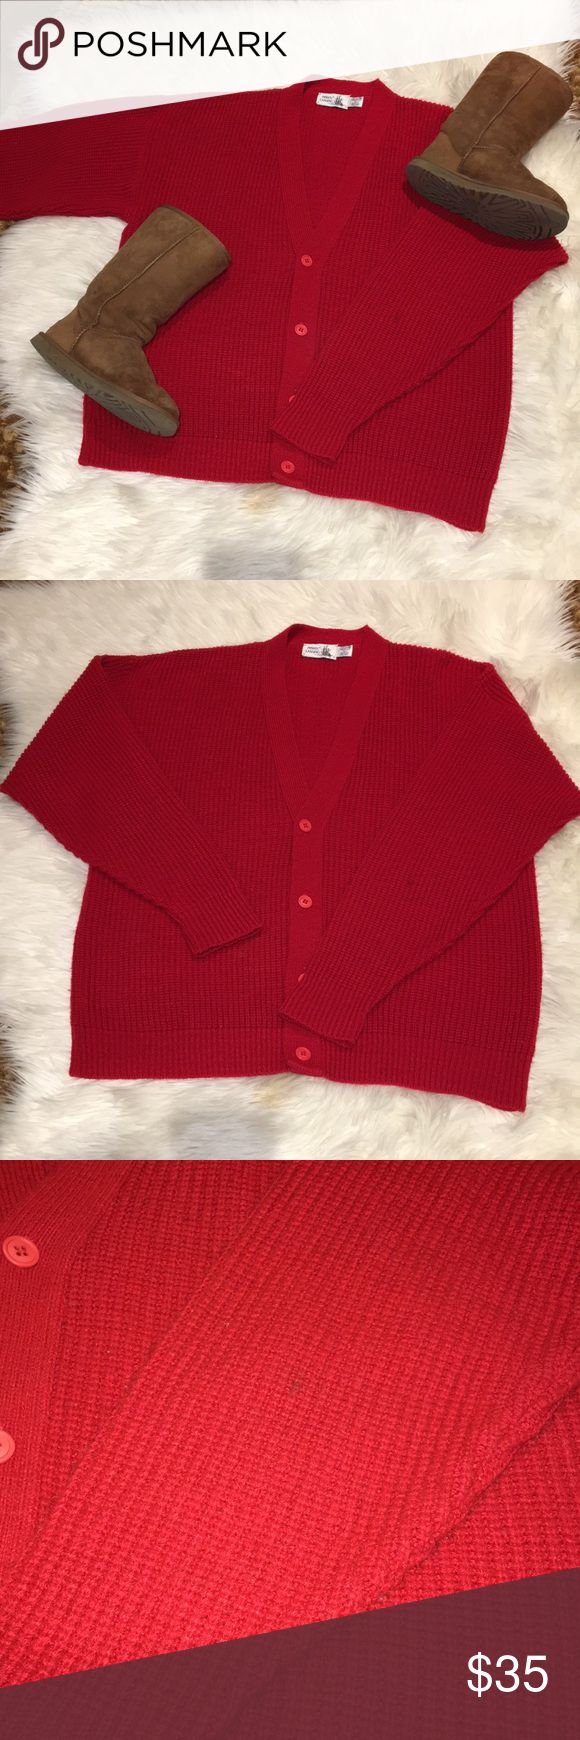 Red button up sweater jacket cardigan Beautiful new condition red button sweater jacket cardigan. Size Large. Perfect for holidays or for warm comfy wear. Shoulder to shoulder is 25 inches. From neck to bottom is 27.5 inches. Sleeves are 24.5 inches   💰Bundle & Save  ❌No Trades Sweaters Cardigans